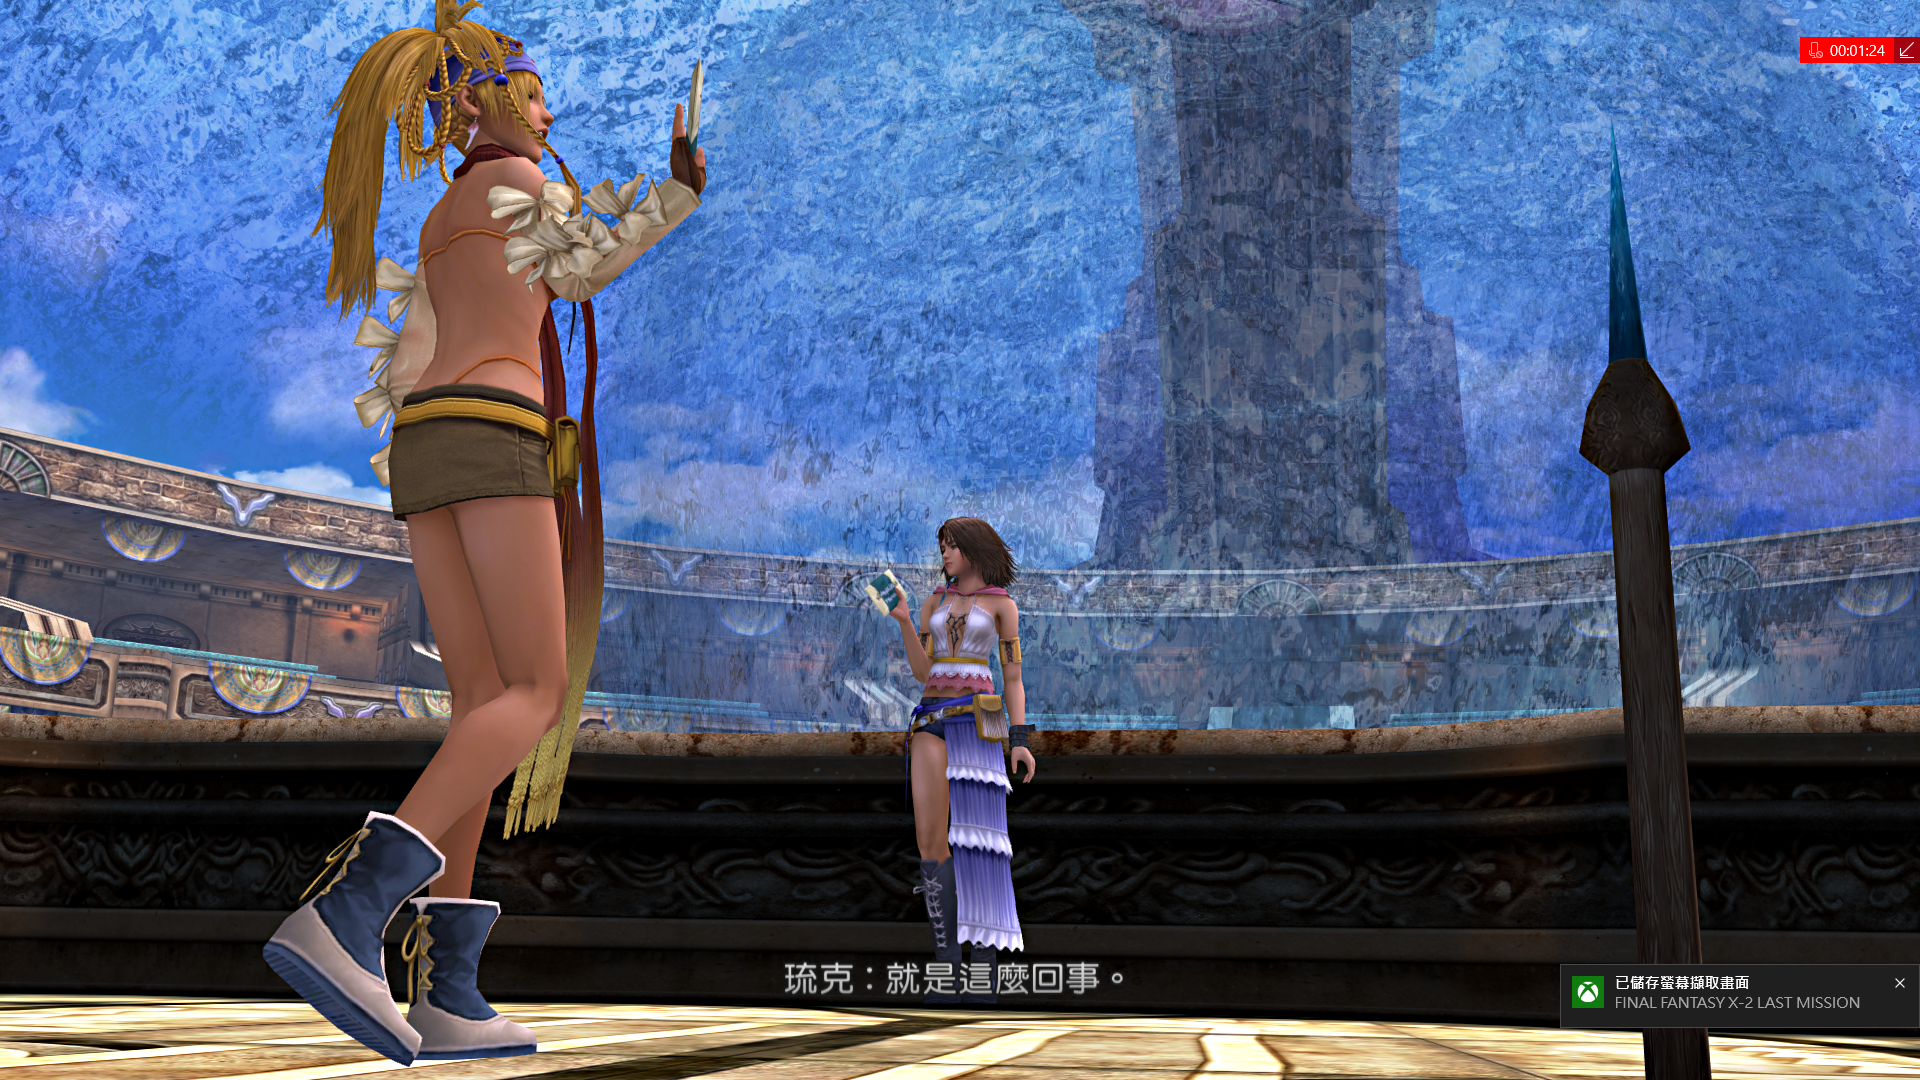 FINAL FANTASY X-2 LAST MISSION 2016_5_22 下午 05_27_56.png